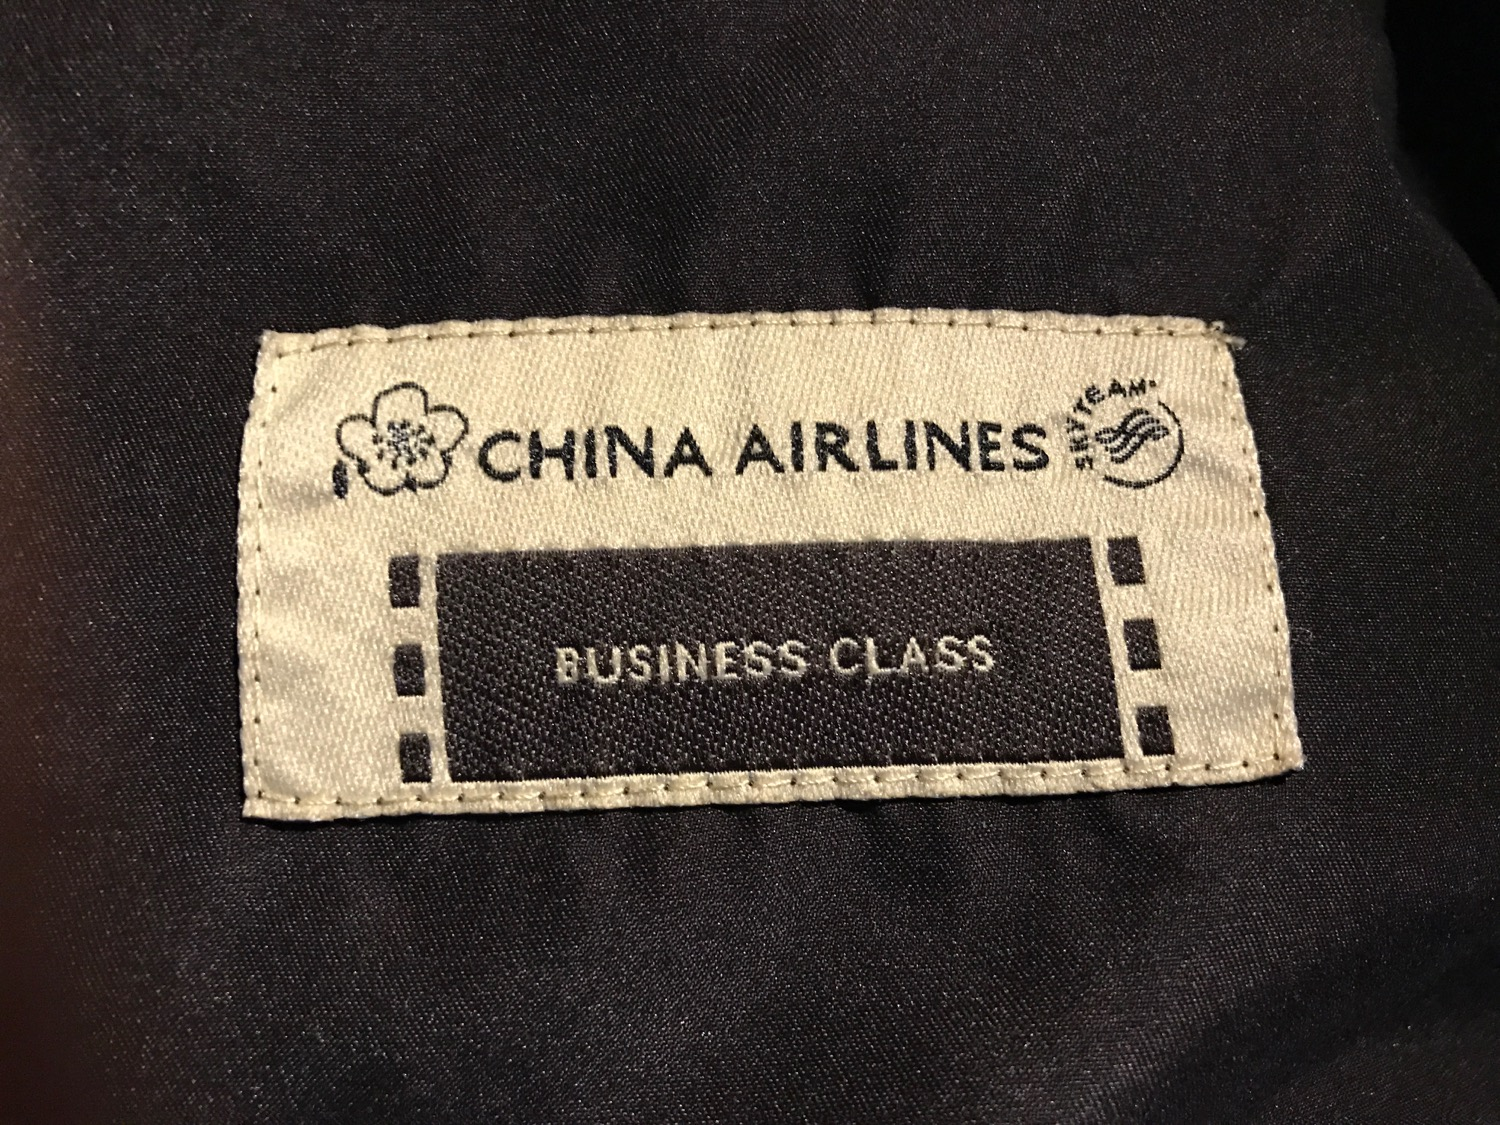 China Airlines A350 Business Class Review - 77